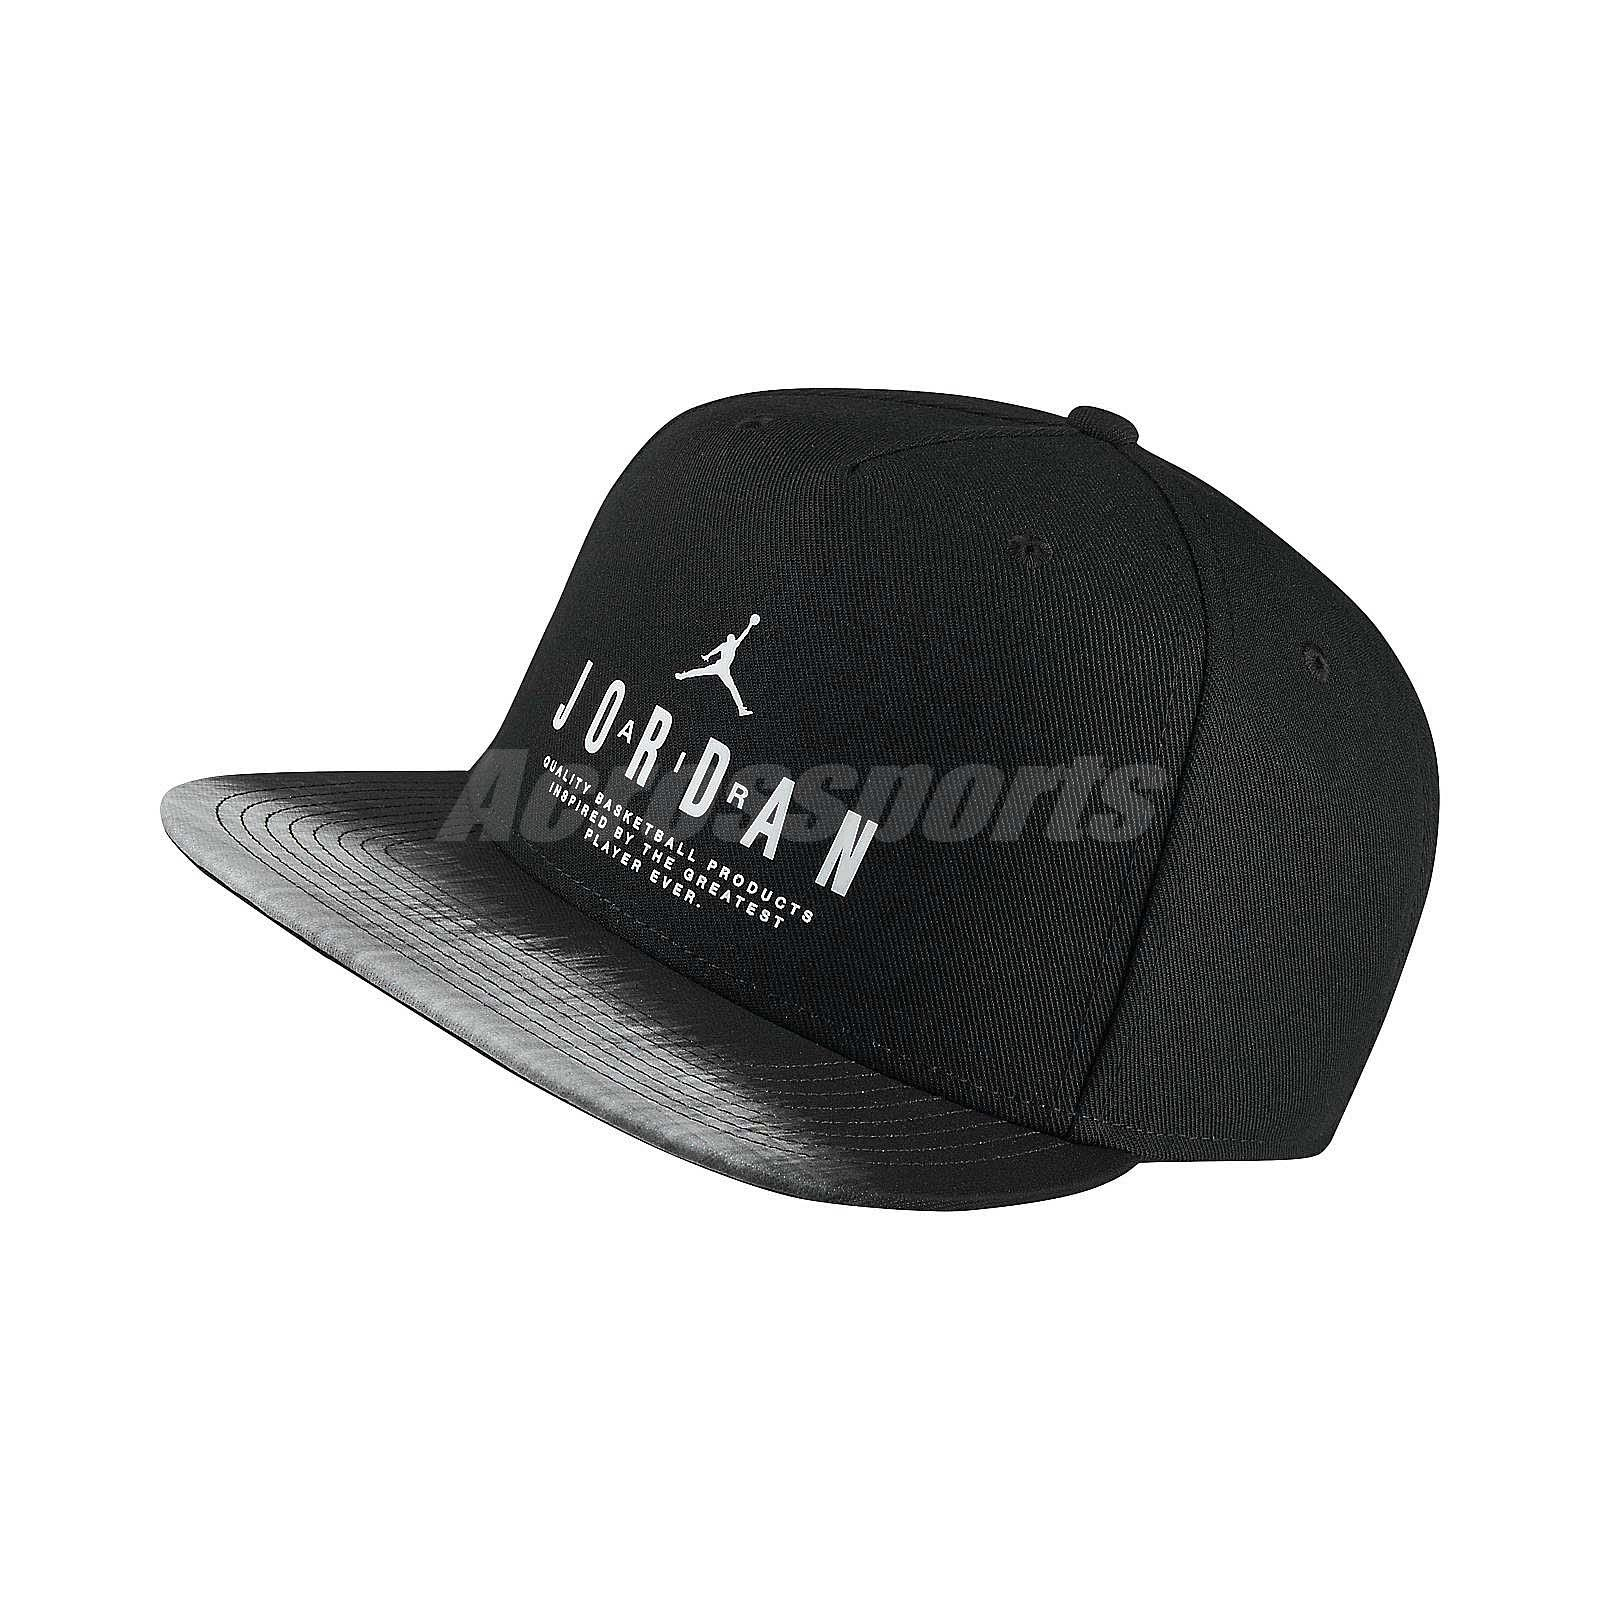 4407c0c4401 Details about Jordan Modern Heritage Snapback Adjustable Hat Air 23 Jumpman  Cap Gym 834893-010